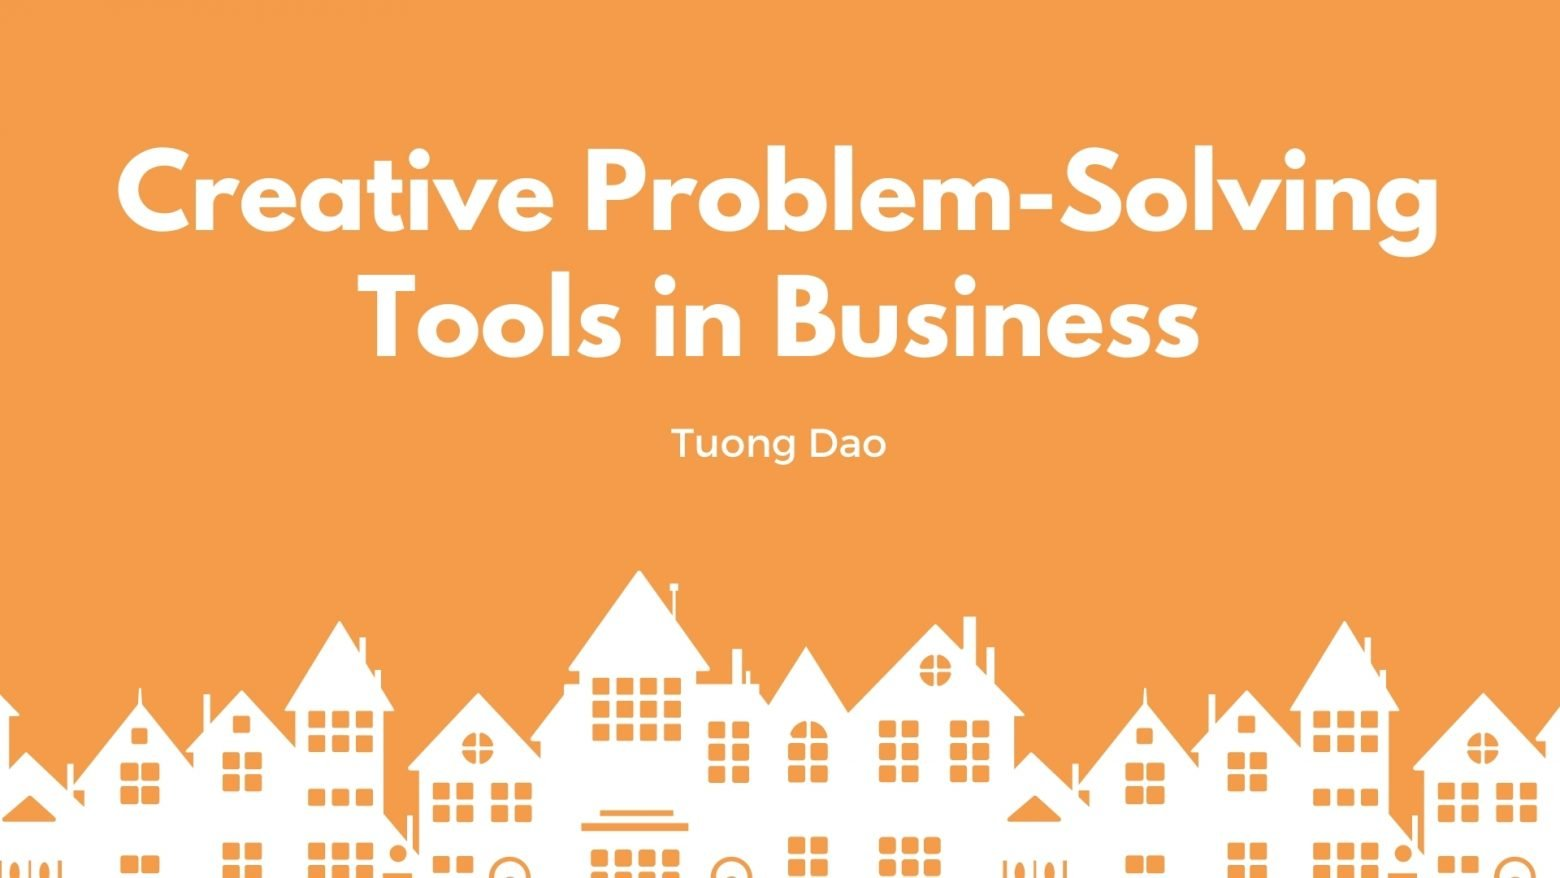 Creative Problem Solving Tools and Examples in Business